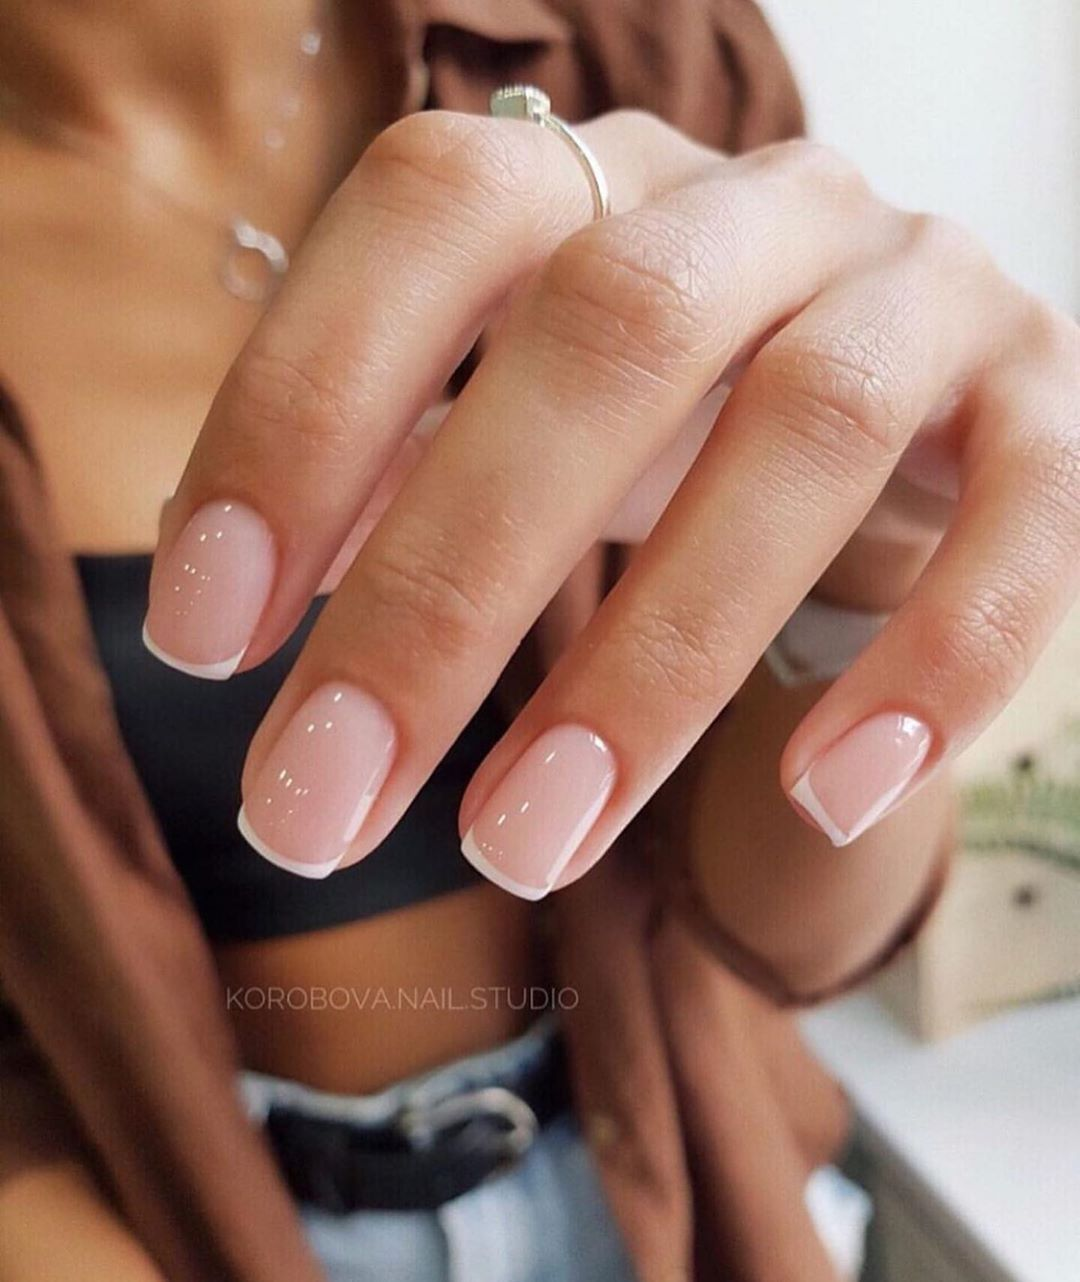 Nailstyle Yes Or No French Manicure Nails Gelove Nehty Nehet A Design Nehtu